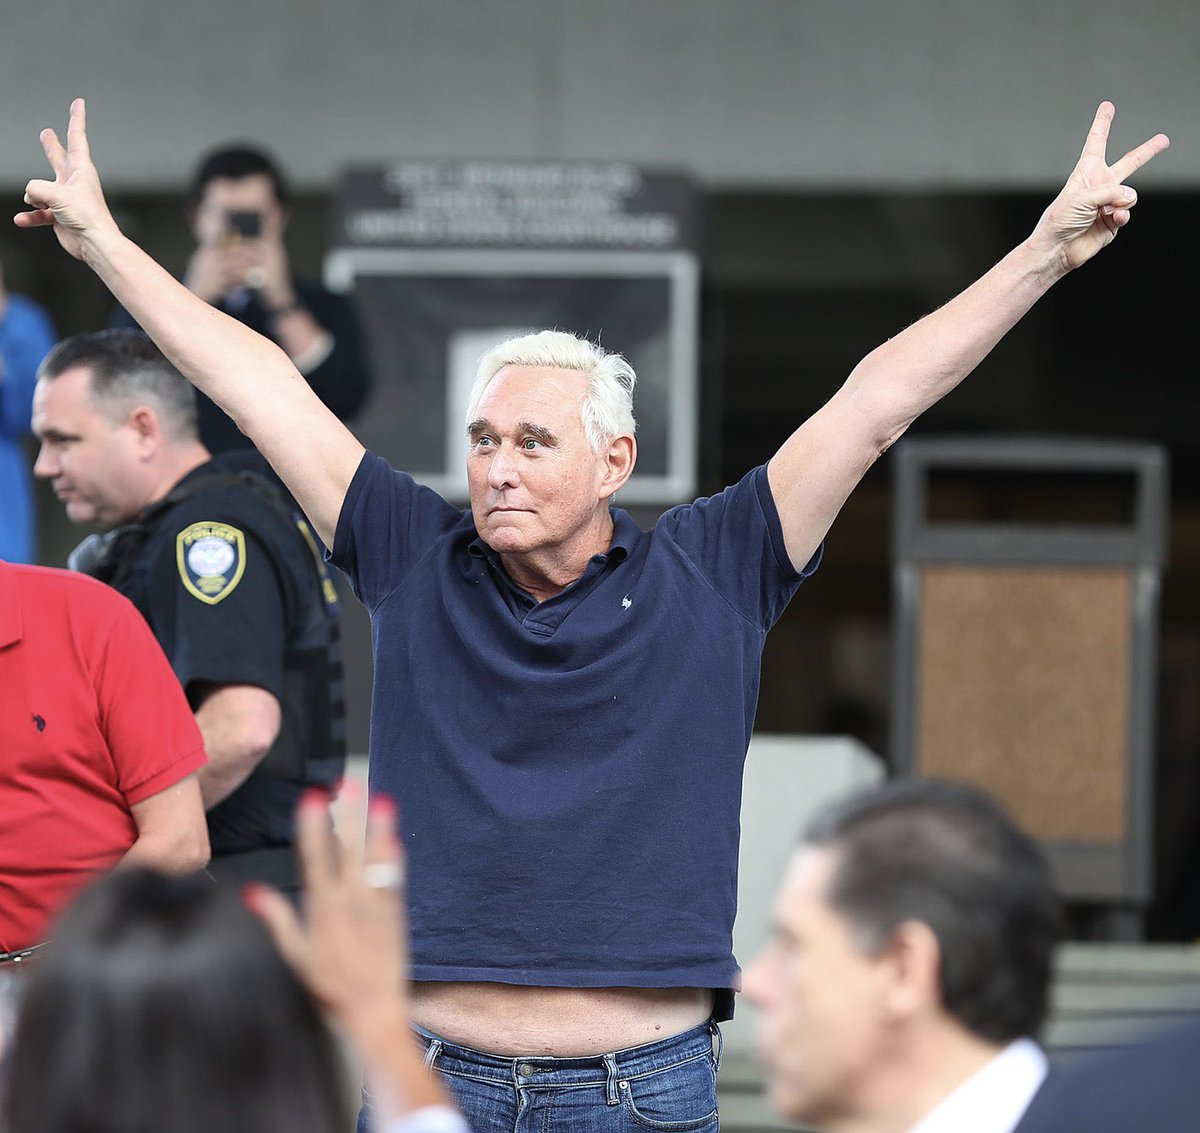 Roger Stone. Found guilty by a jury on 7 federal criminal counts. No jail time.  Kalief Browder. Accused of stealing a backpack. Couldn't post bail. Spent 3 years at Riker's awaiting trial. Ultimately committed suicide after released.  We have two justice systems in our country. https://t.co/AjIYgAgNOm